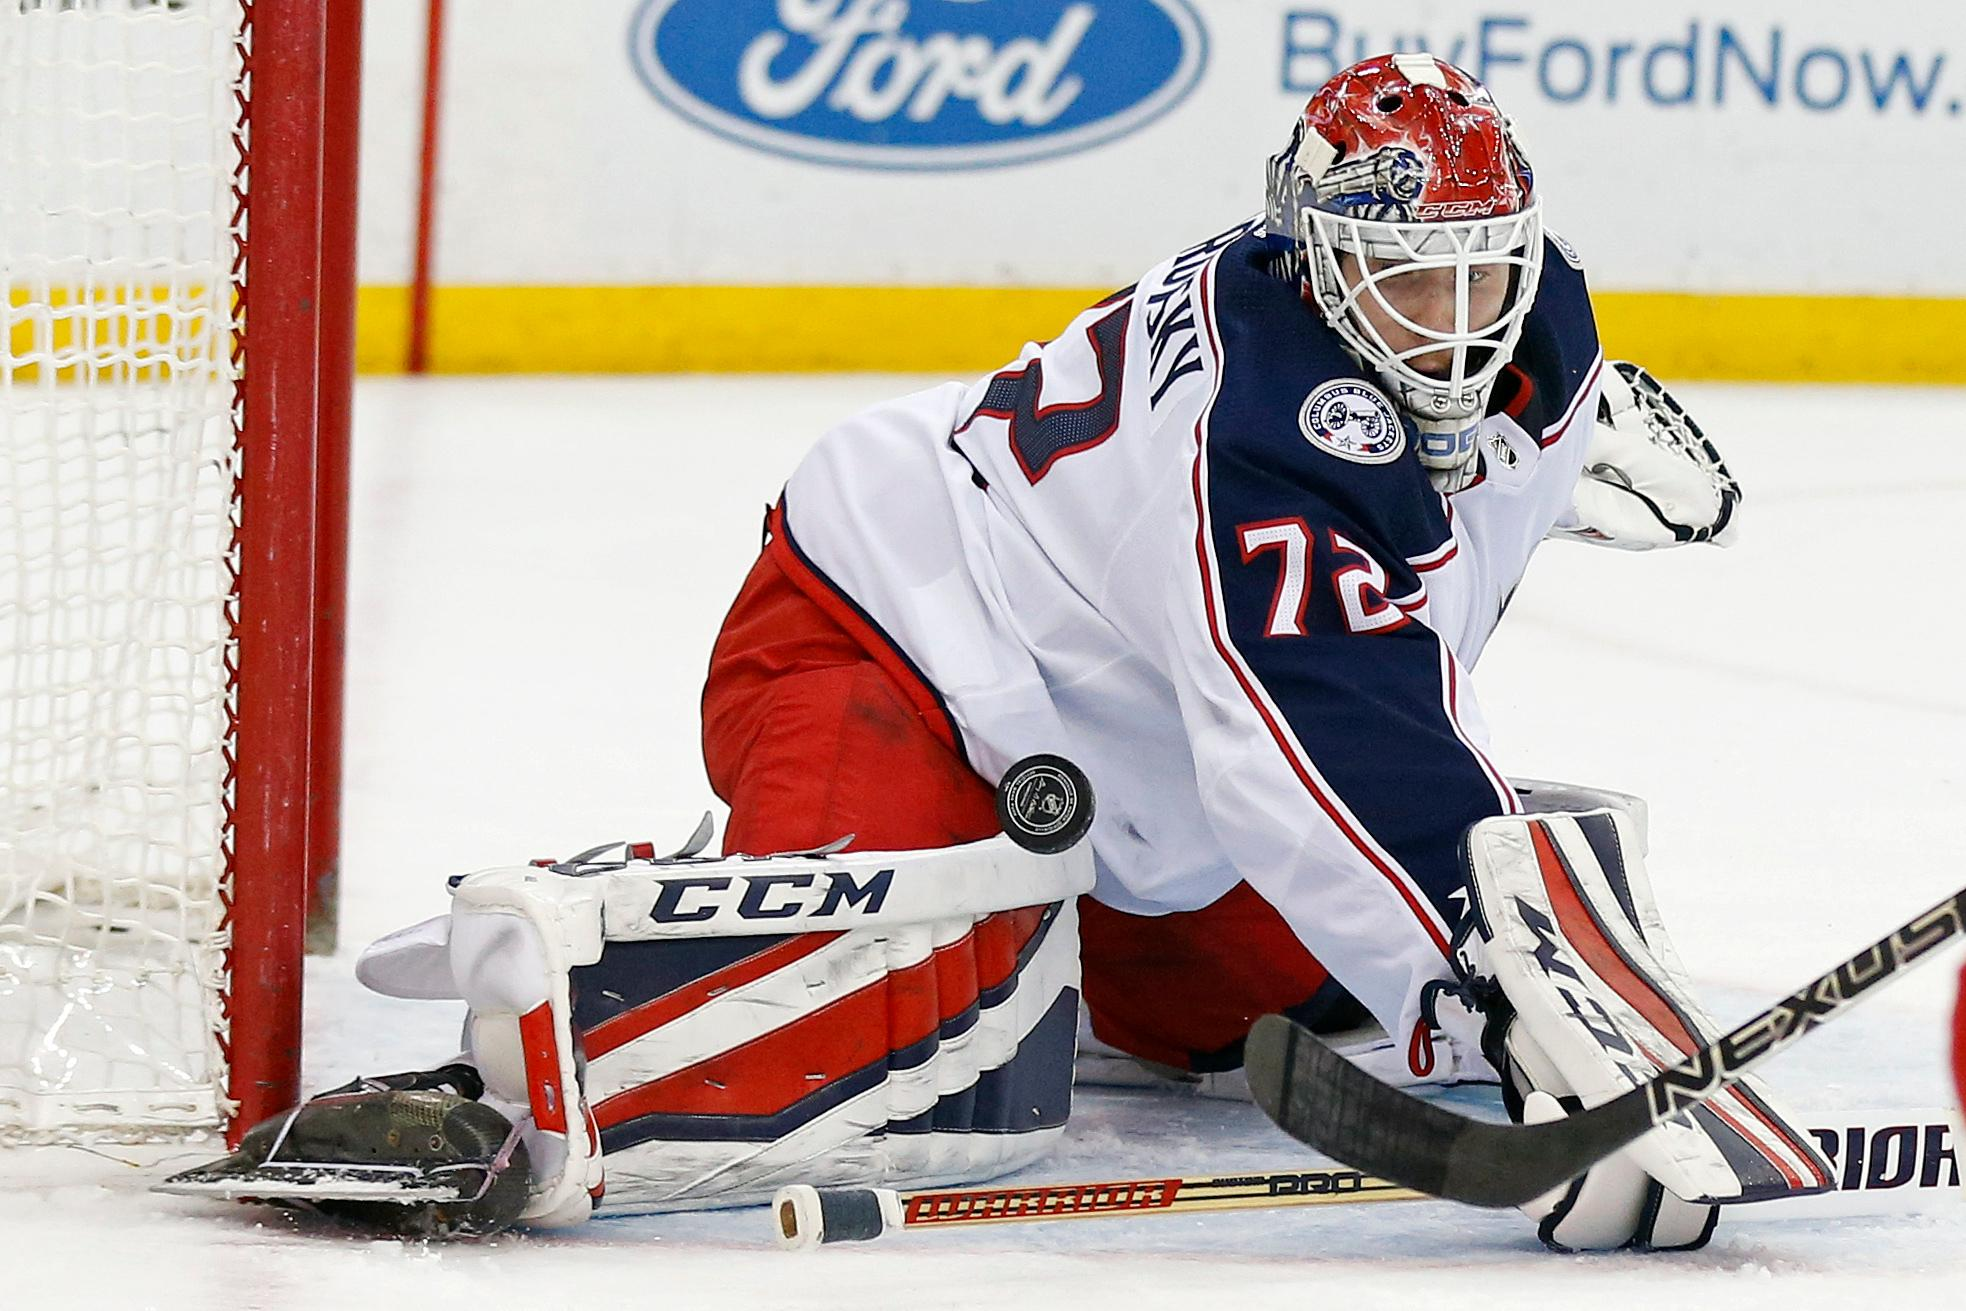 Columbus Blue Jackets goaltender Sergei Bobrovsky (72) makes a save against the New Jersey Devils during the second period of an NHL hockey game Tuesday, Feb. 20, 2018, in Newark, N.J. (AP Photo/Adam Hunger)